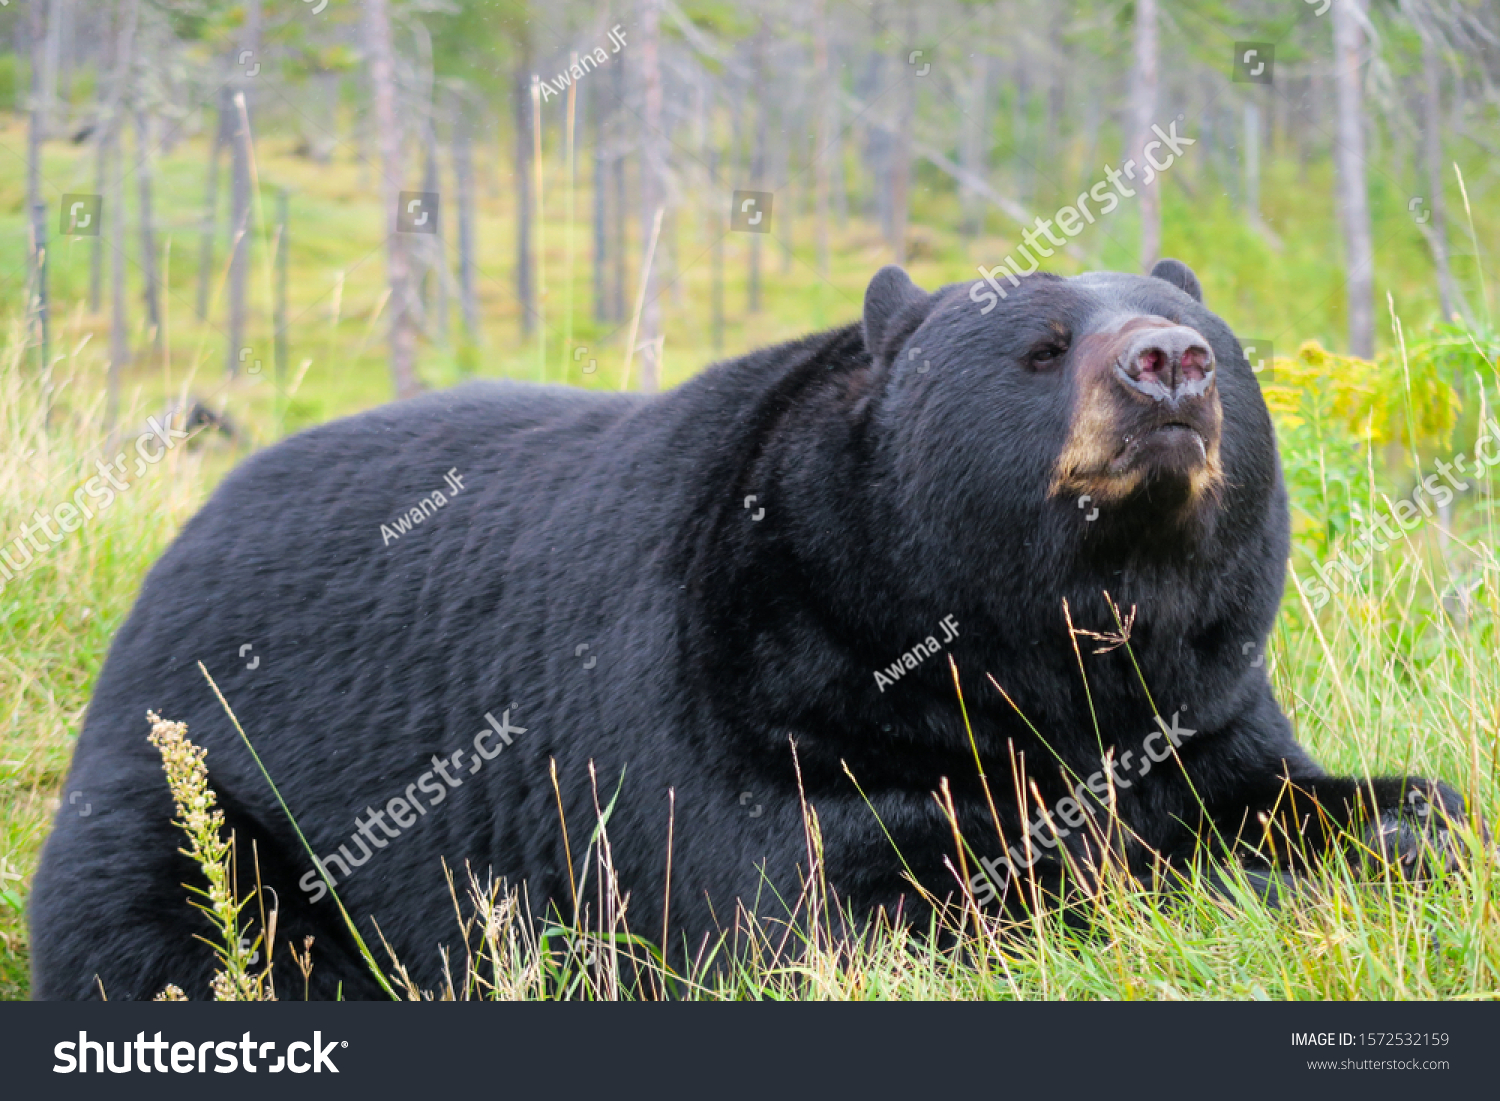 stock-photo-black-bear-laying-down-in-th